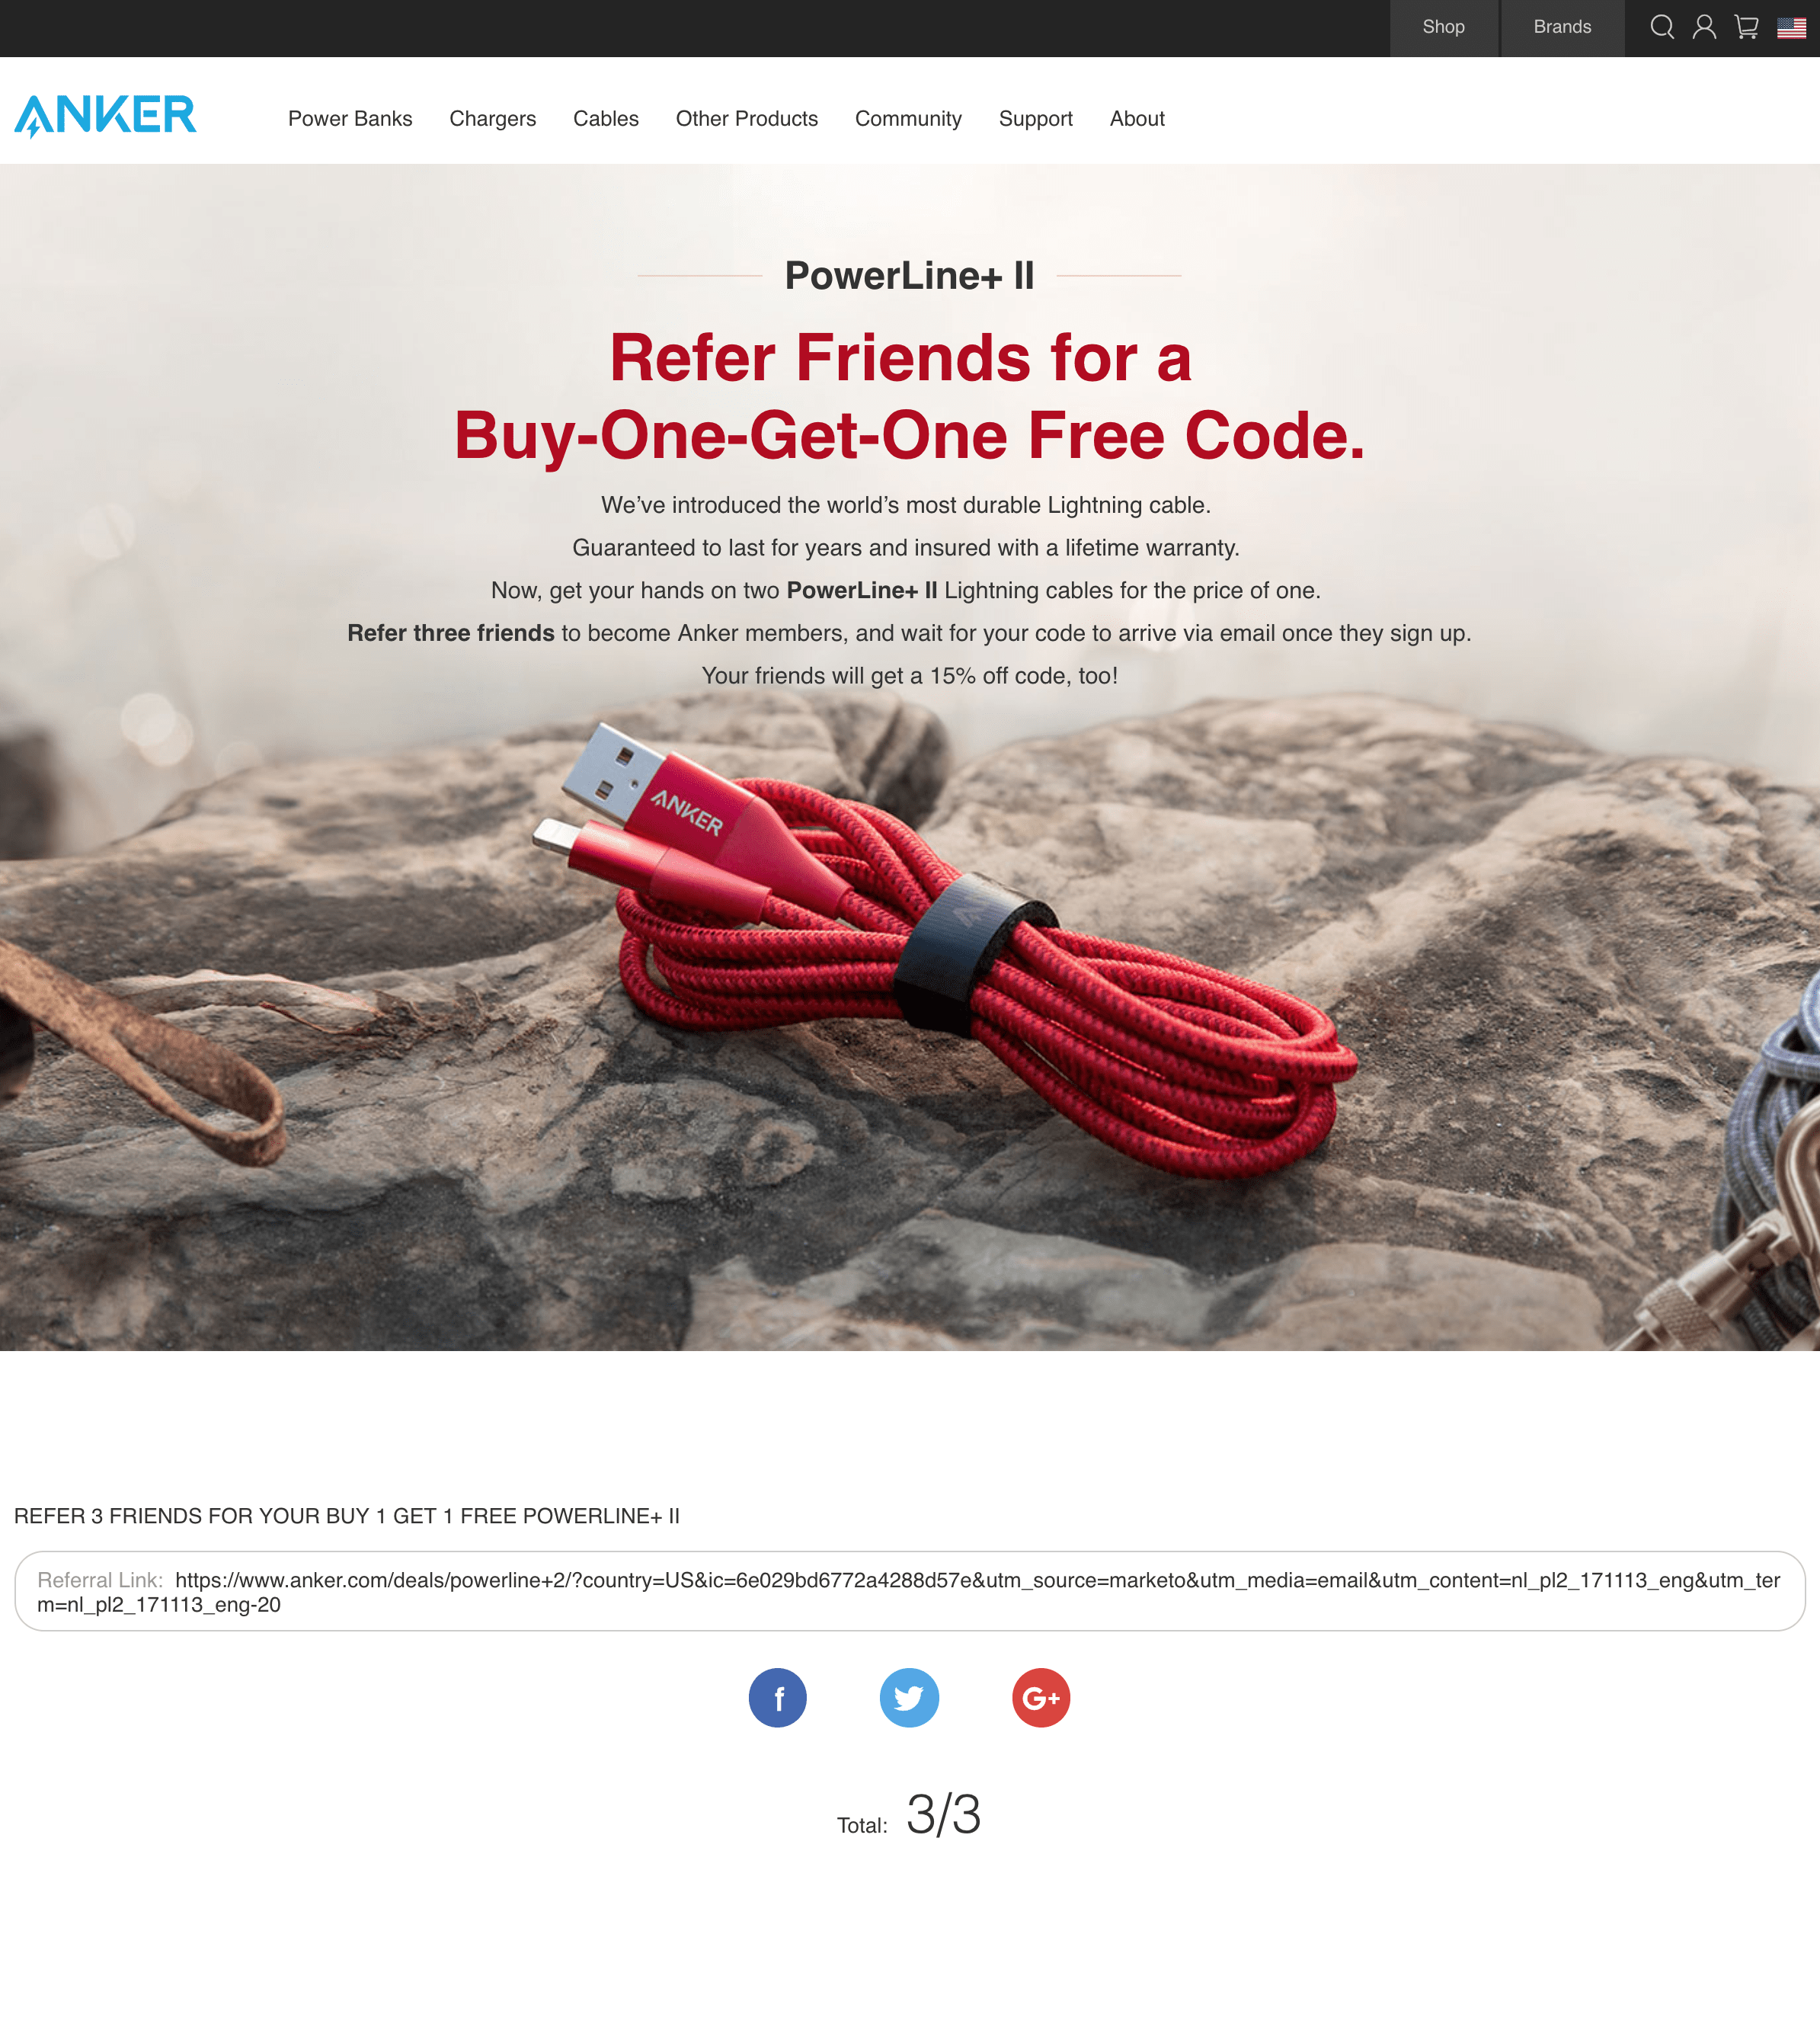 Never Got My Buy 1 Get 1 Free Coupon Code Anker Help